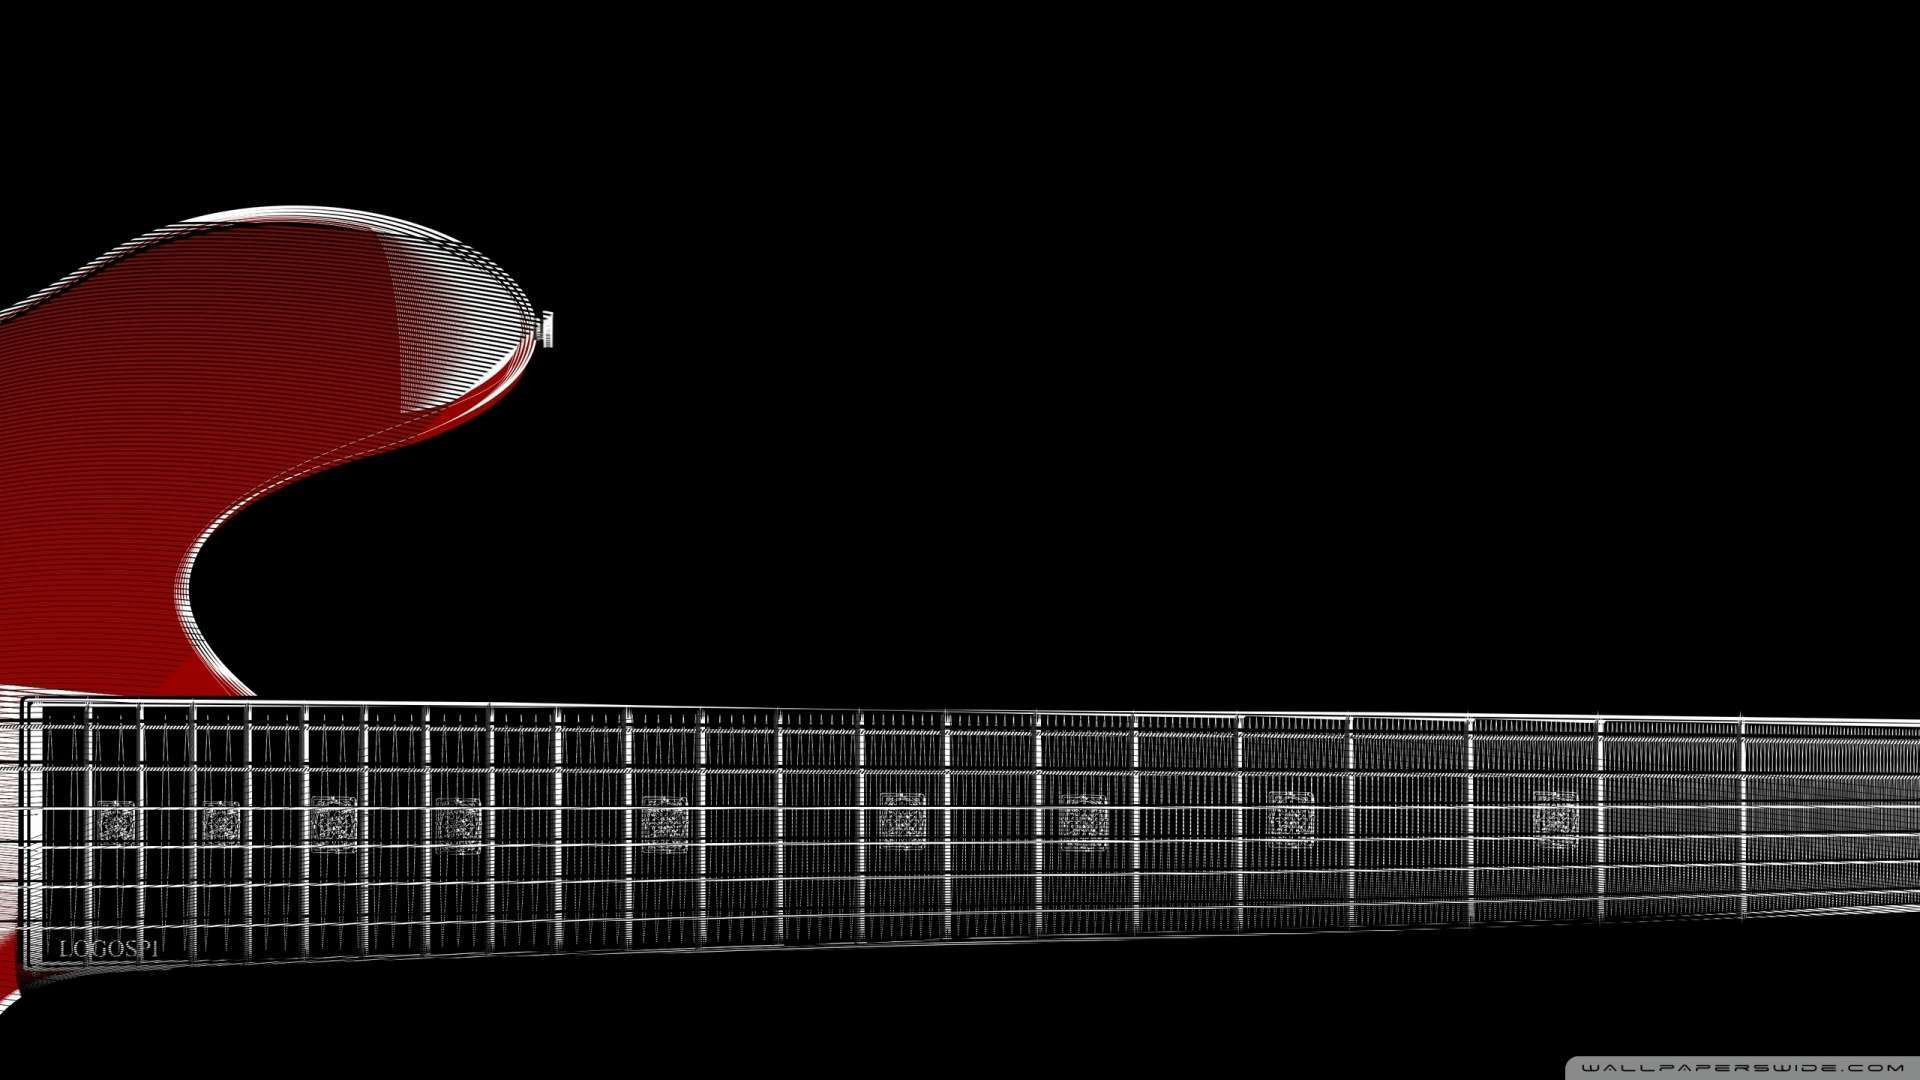 1080p Guitar Wallpaper